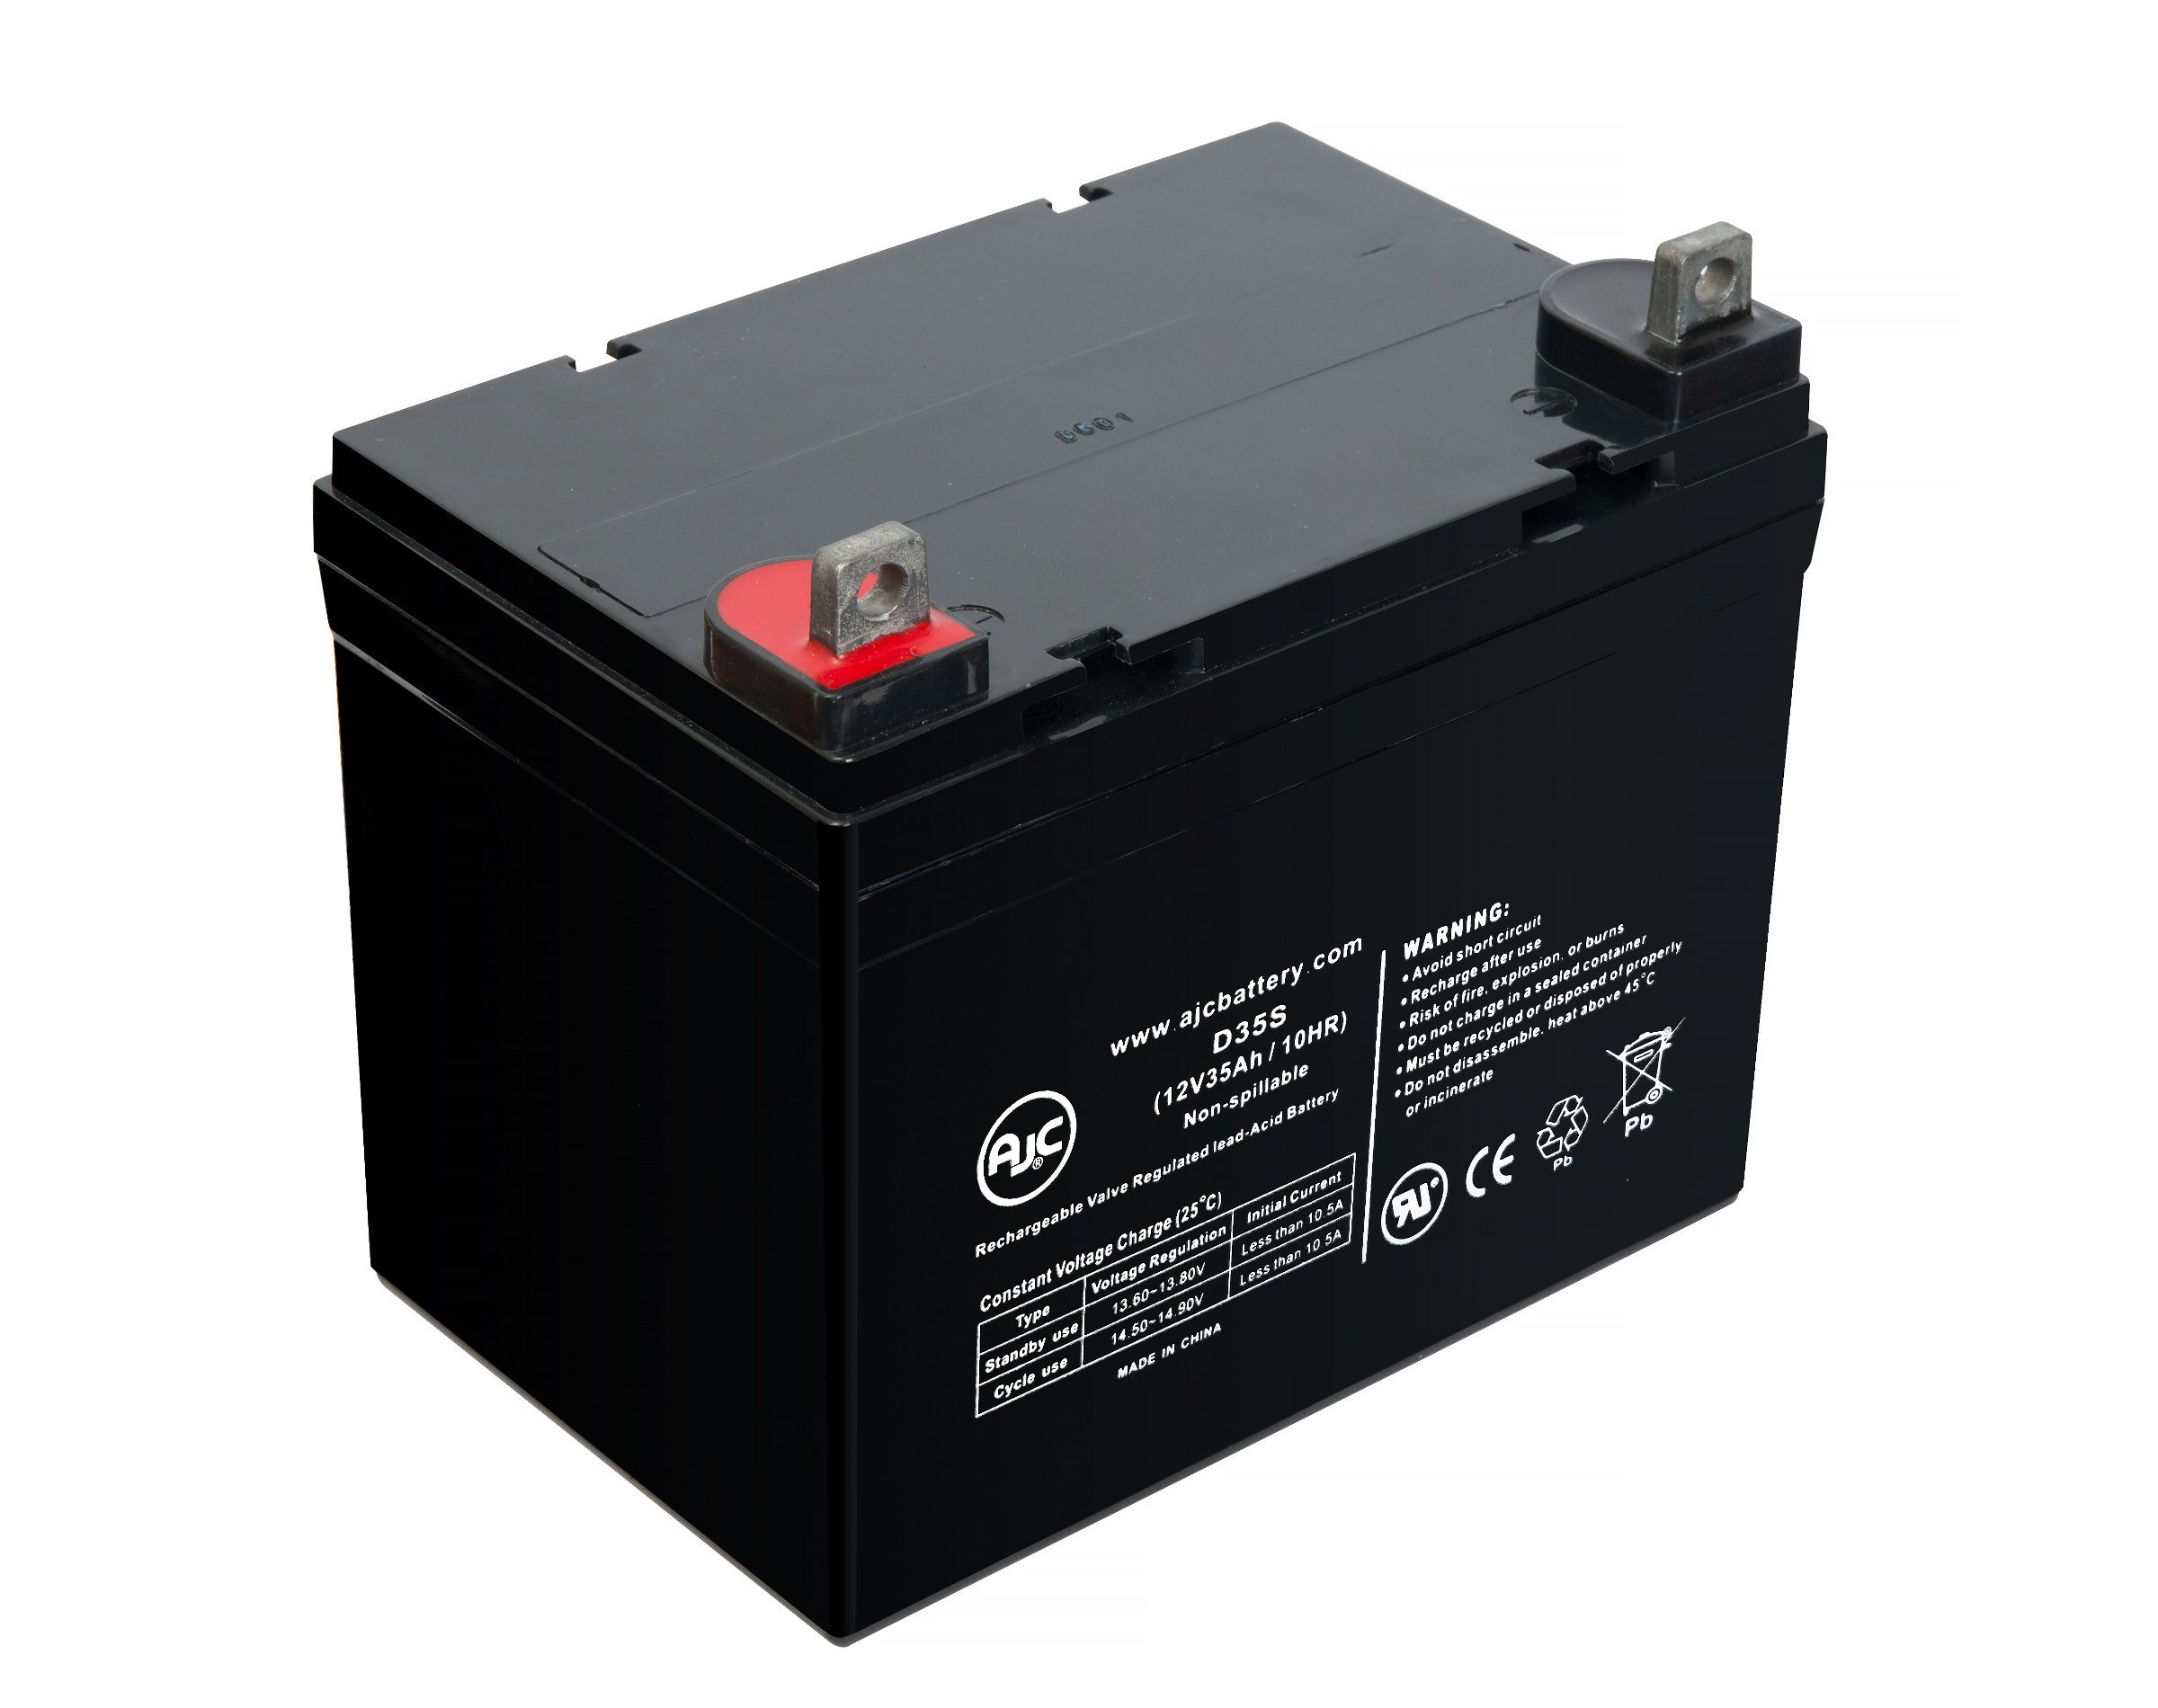 Unisys LI 675 12V 7Ah UPS Battery This is an AJC Brand Replacement